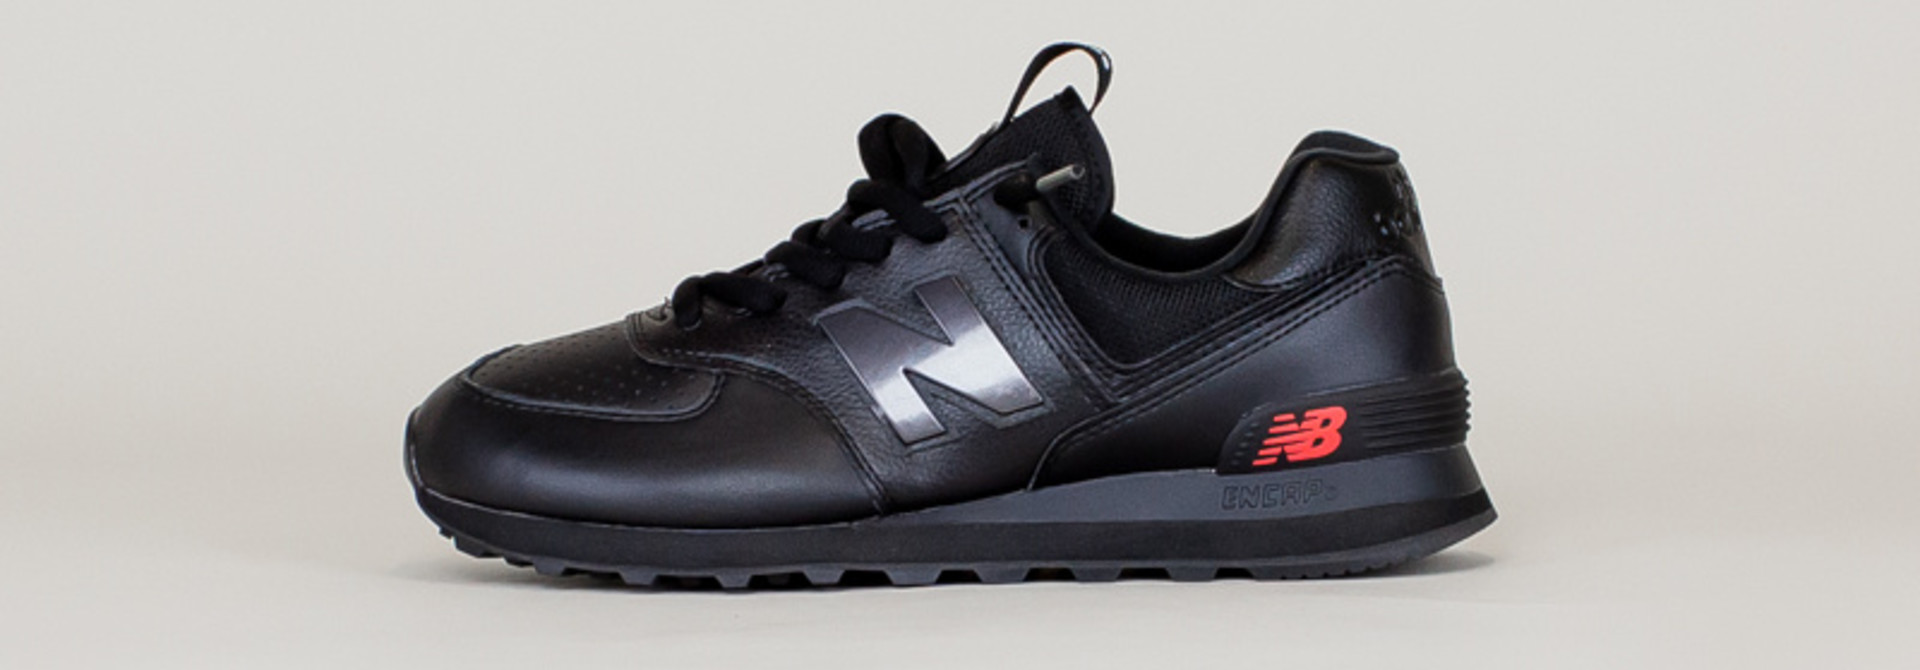 New Balance 574 SOW - Black/ Caviar